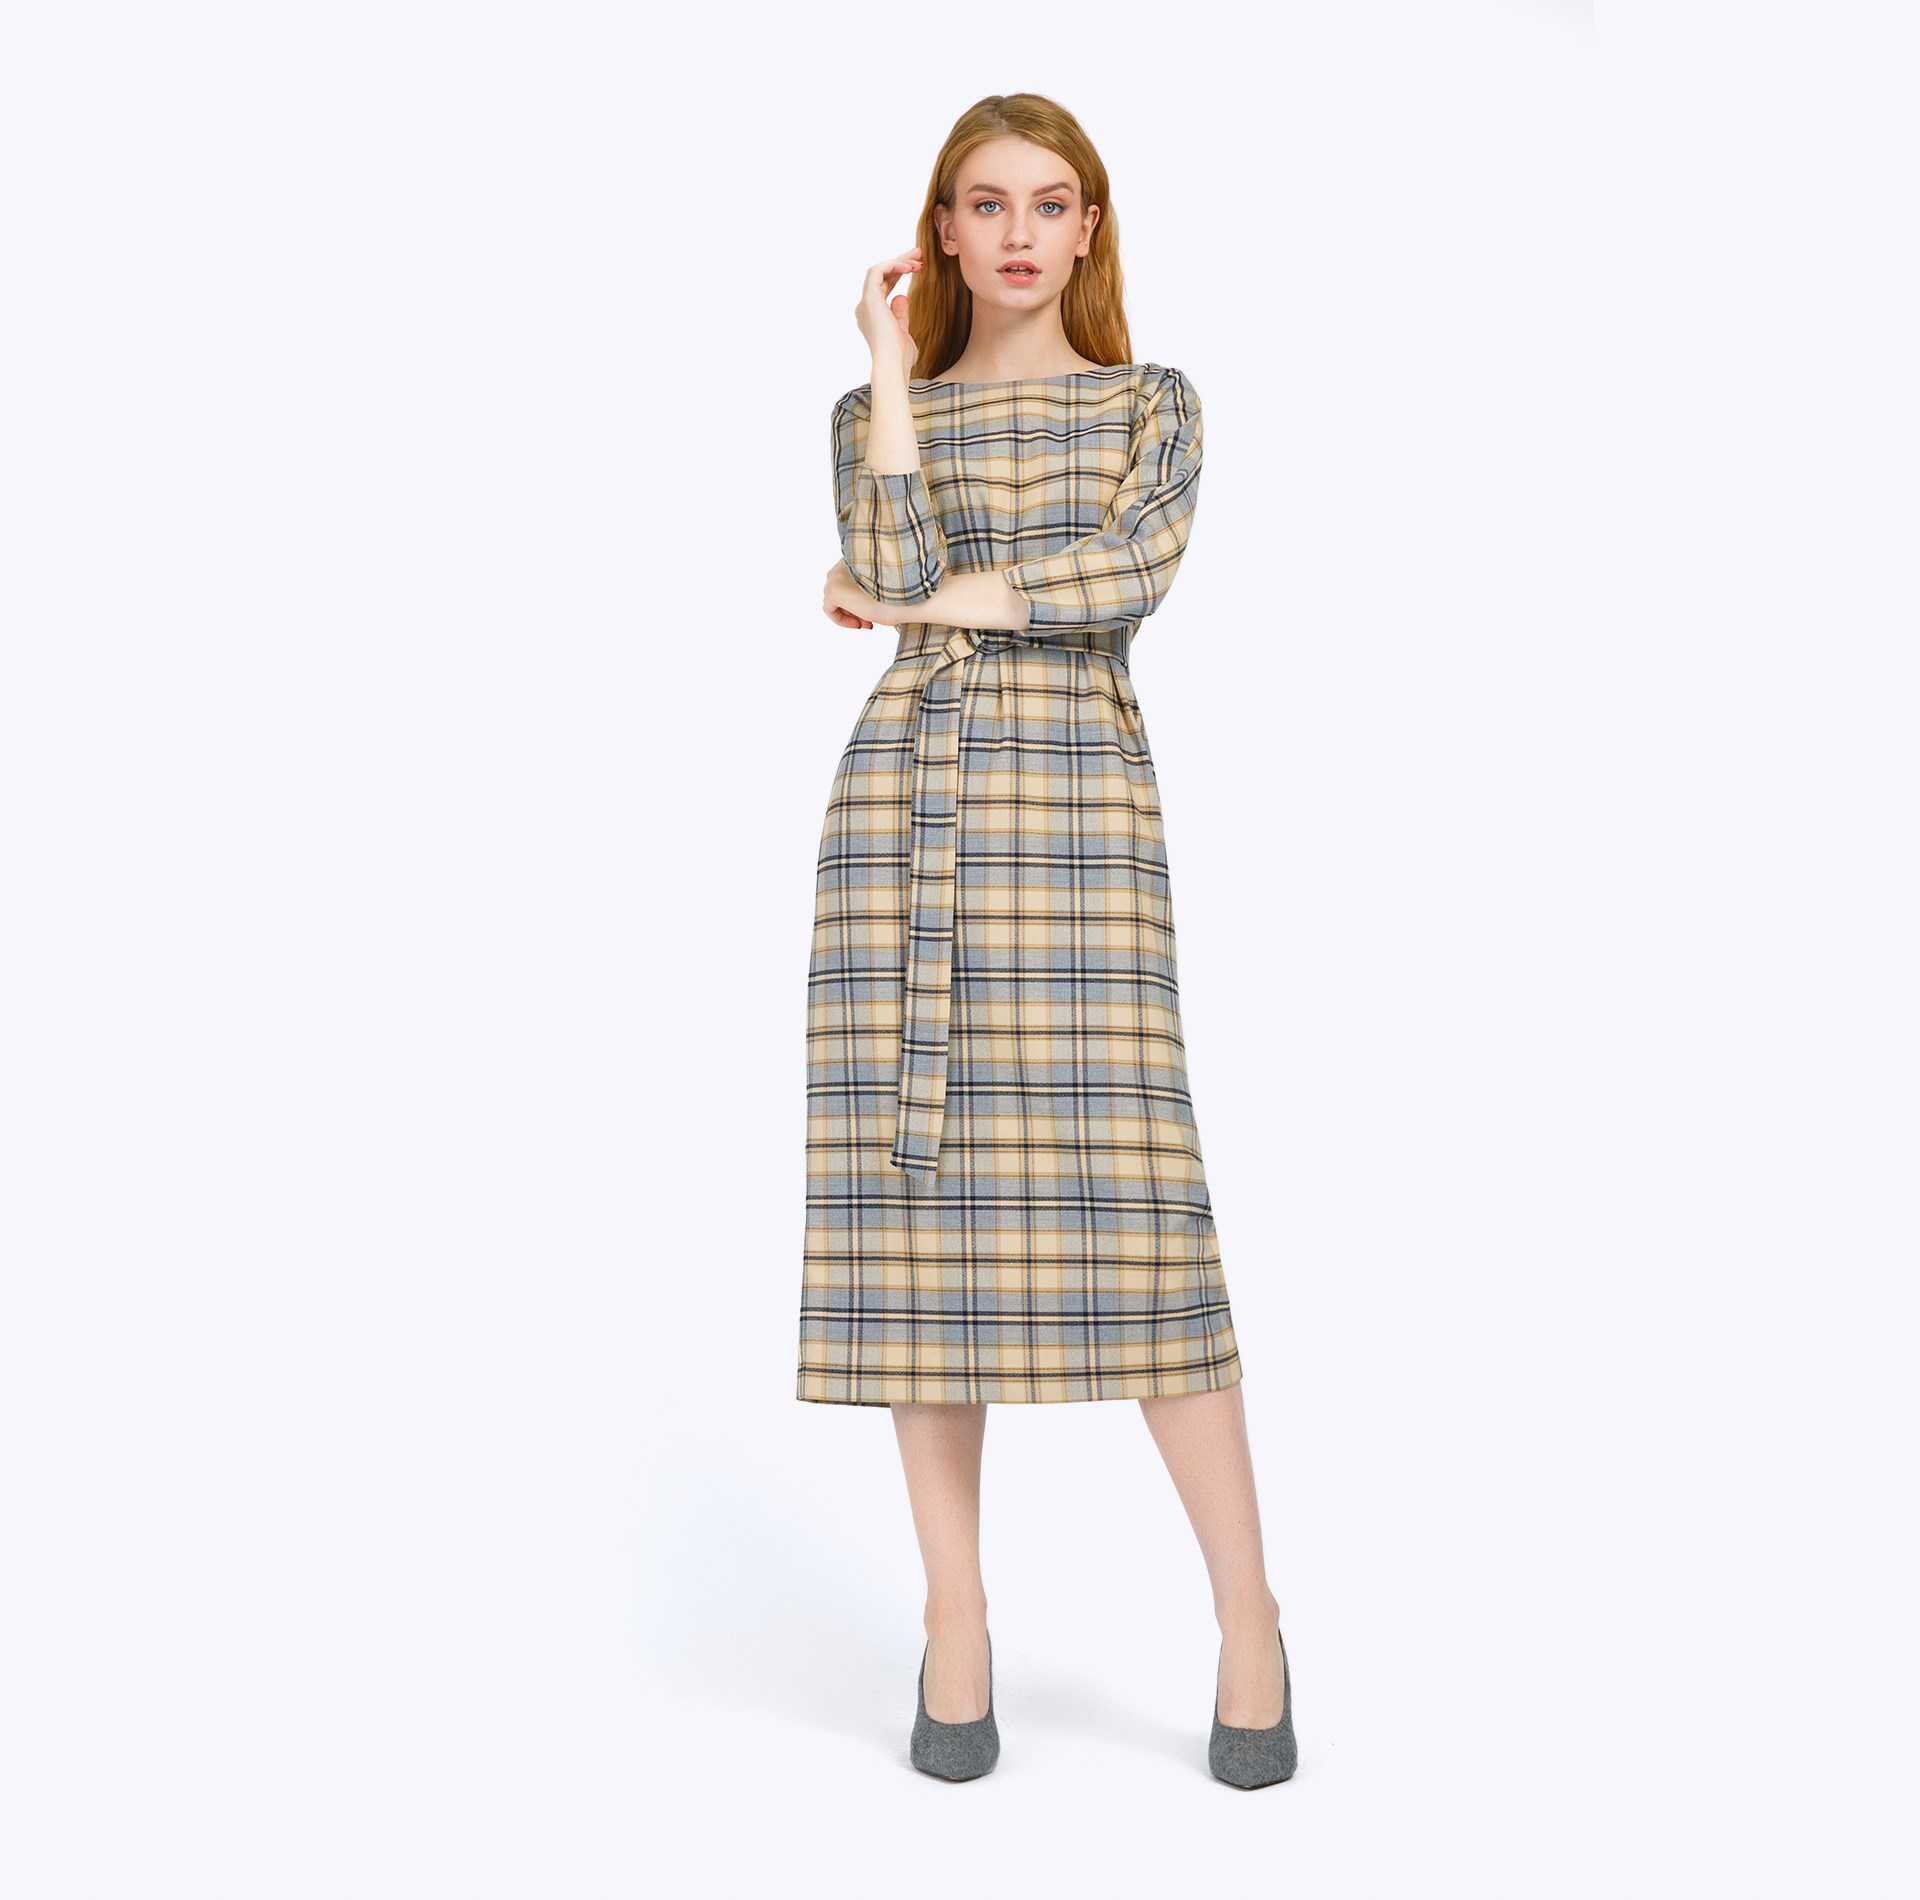 Midi dress plaid self belted button up plaid print dress